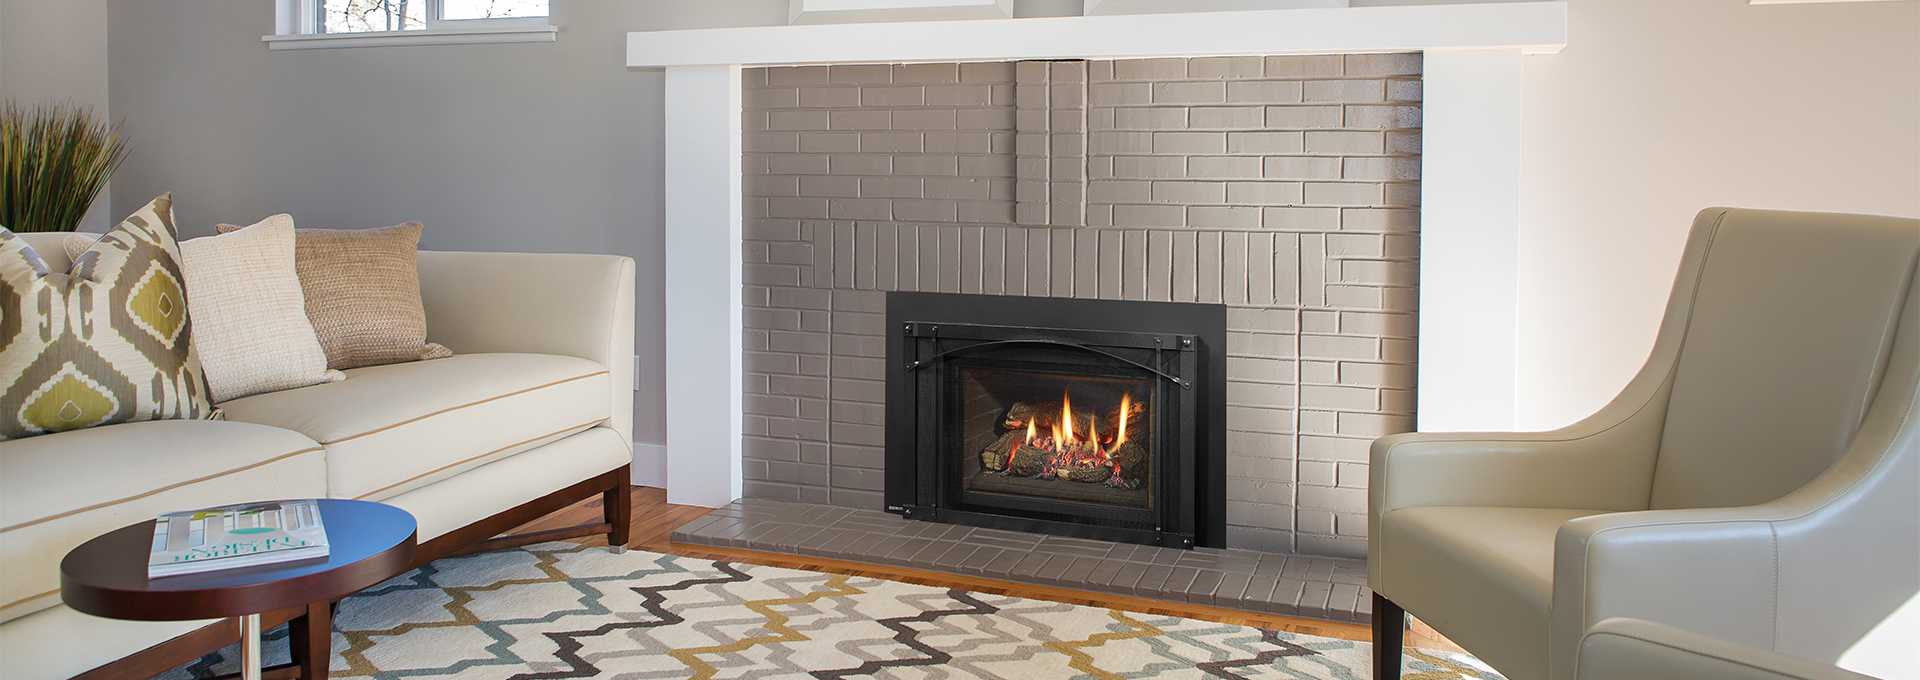 Top 5 Reasons Why You Should Upgrade to a New Gas Fireplace Insert